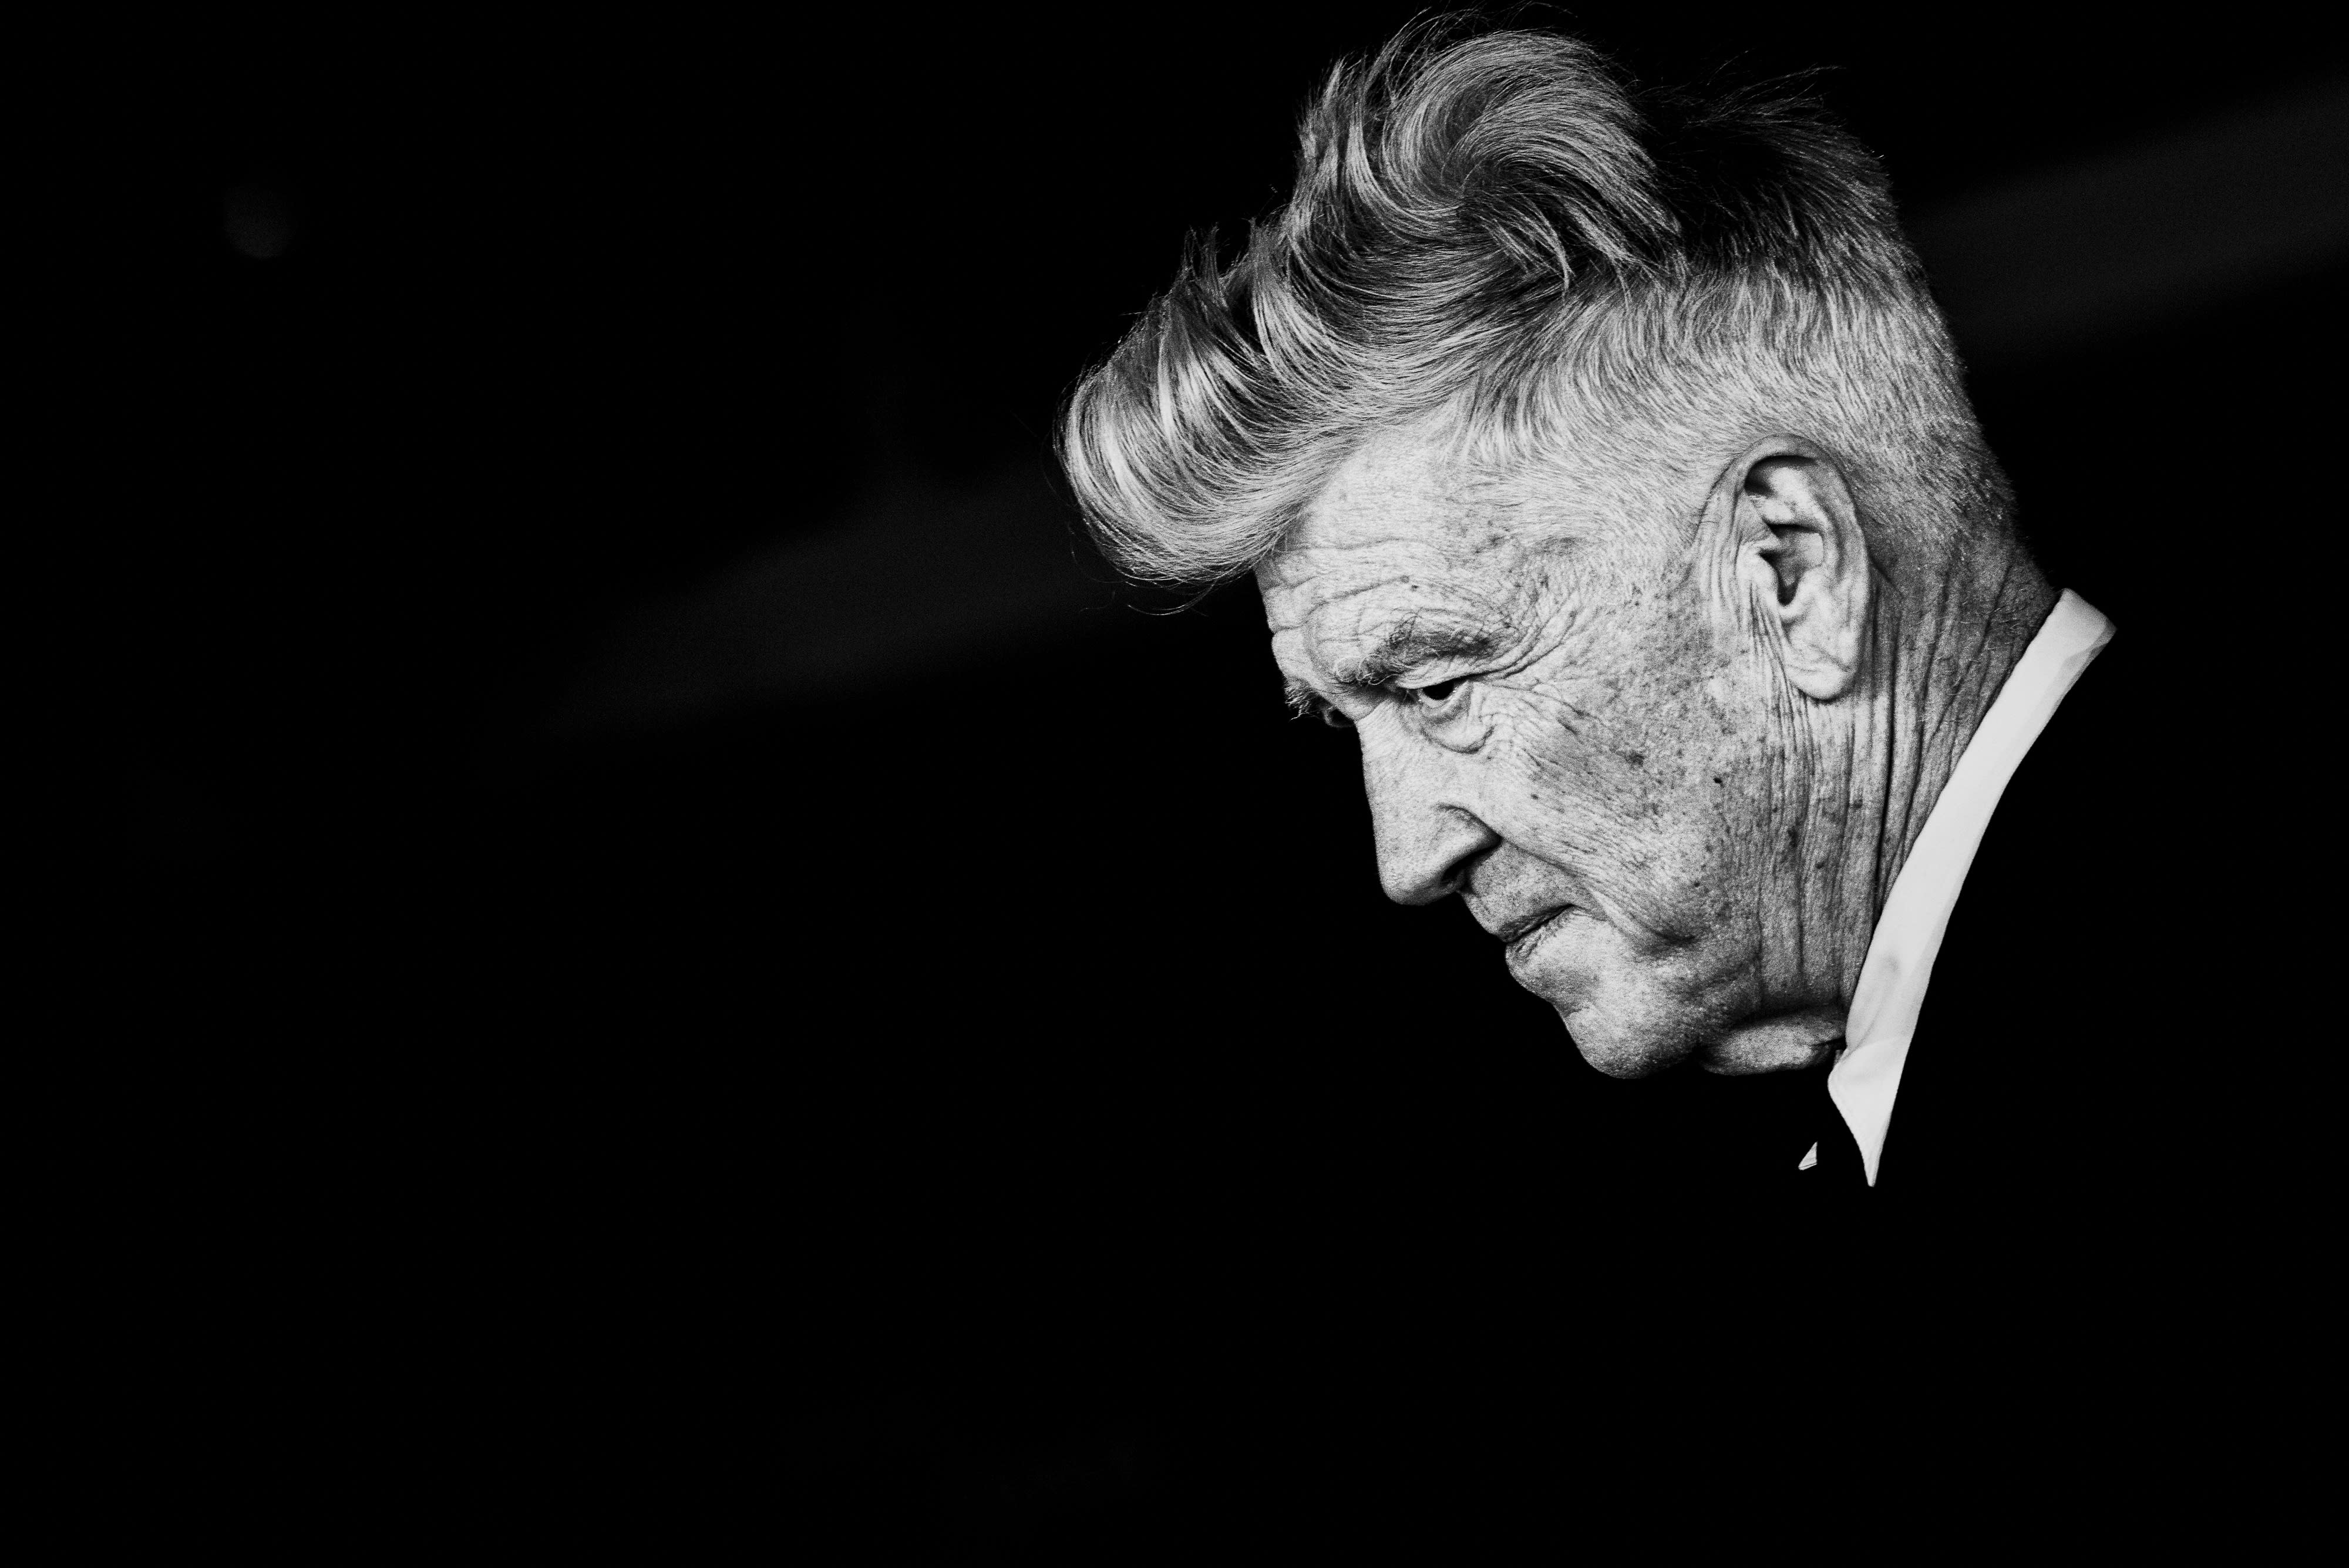 David Lynch talks toxic masculinity and escaping the 'suffocating rubber clown suit of negativity'